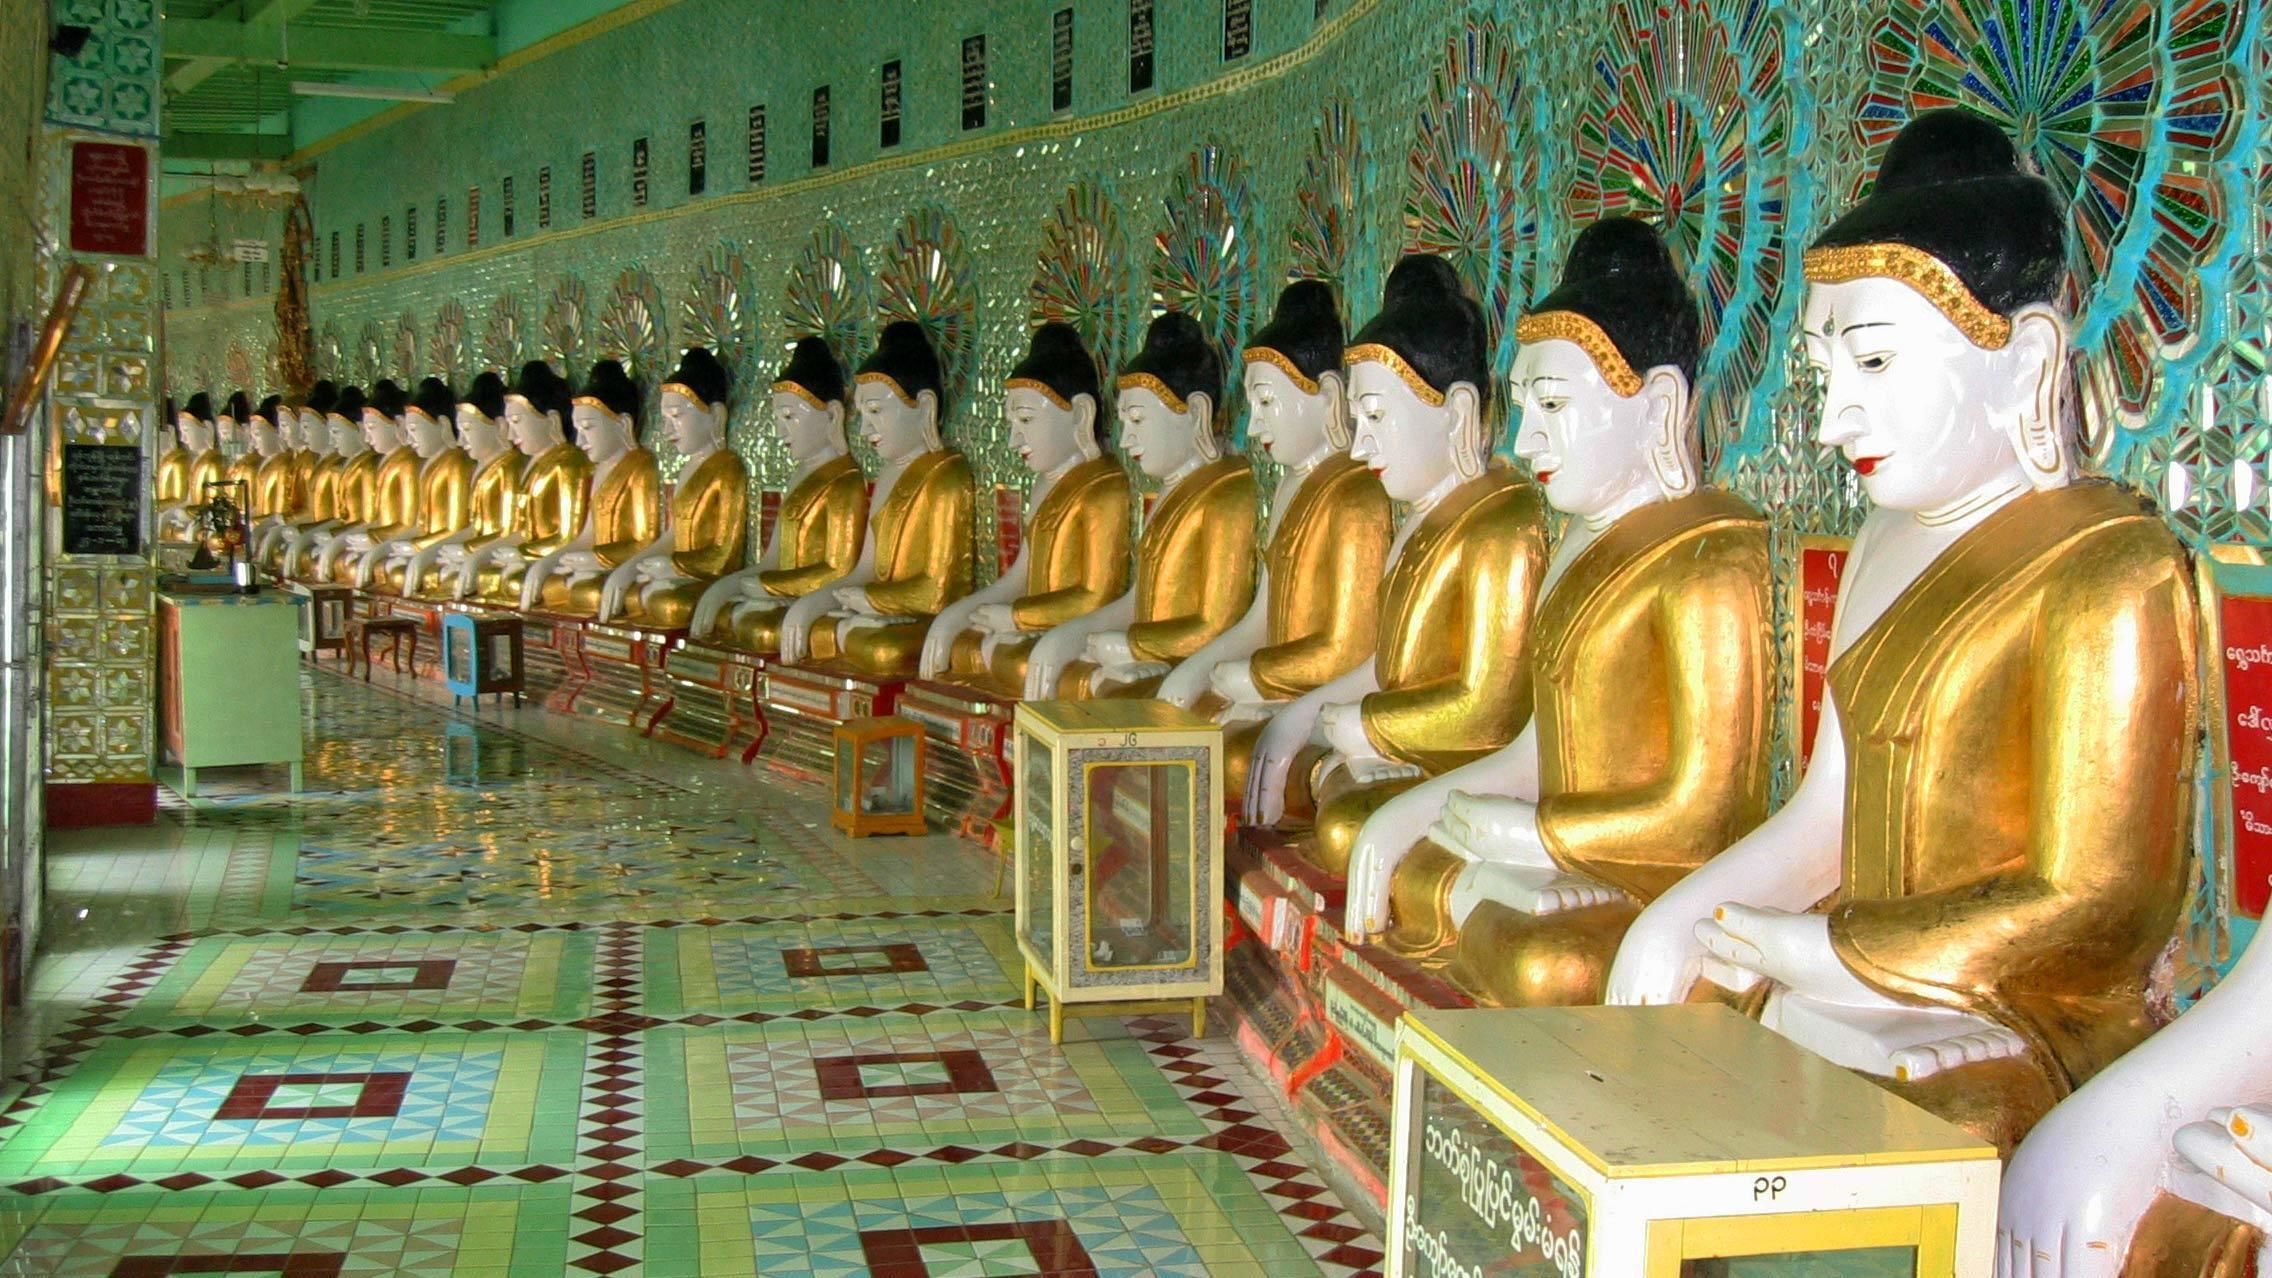 Statues inside a temple in Myanmar